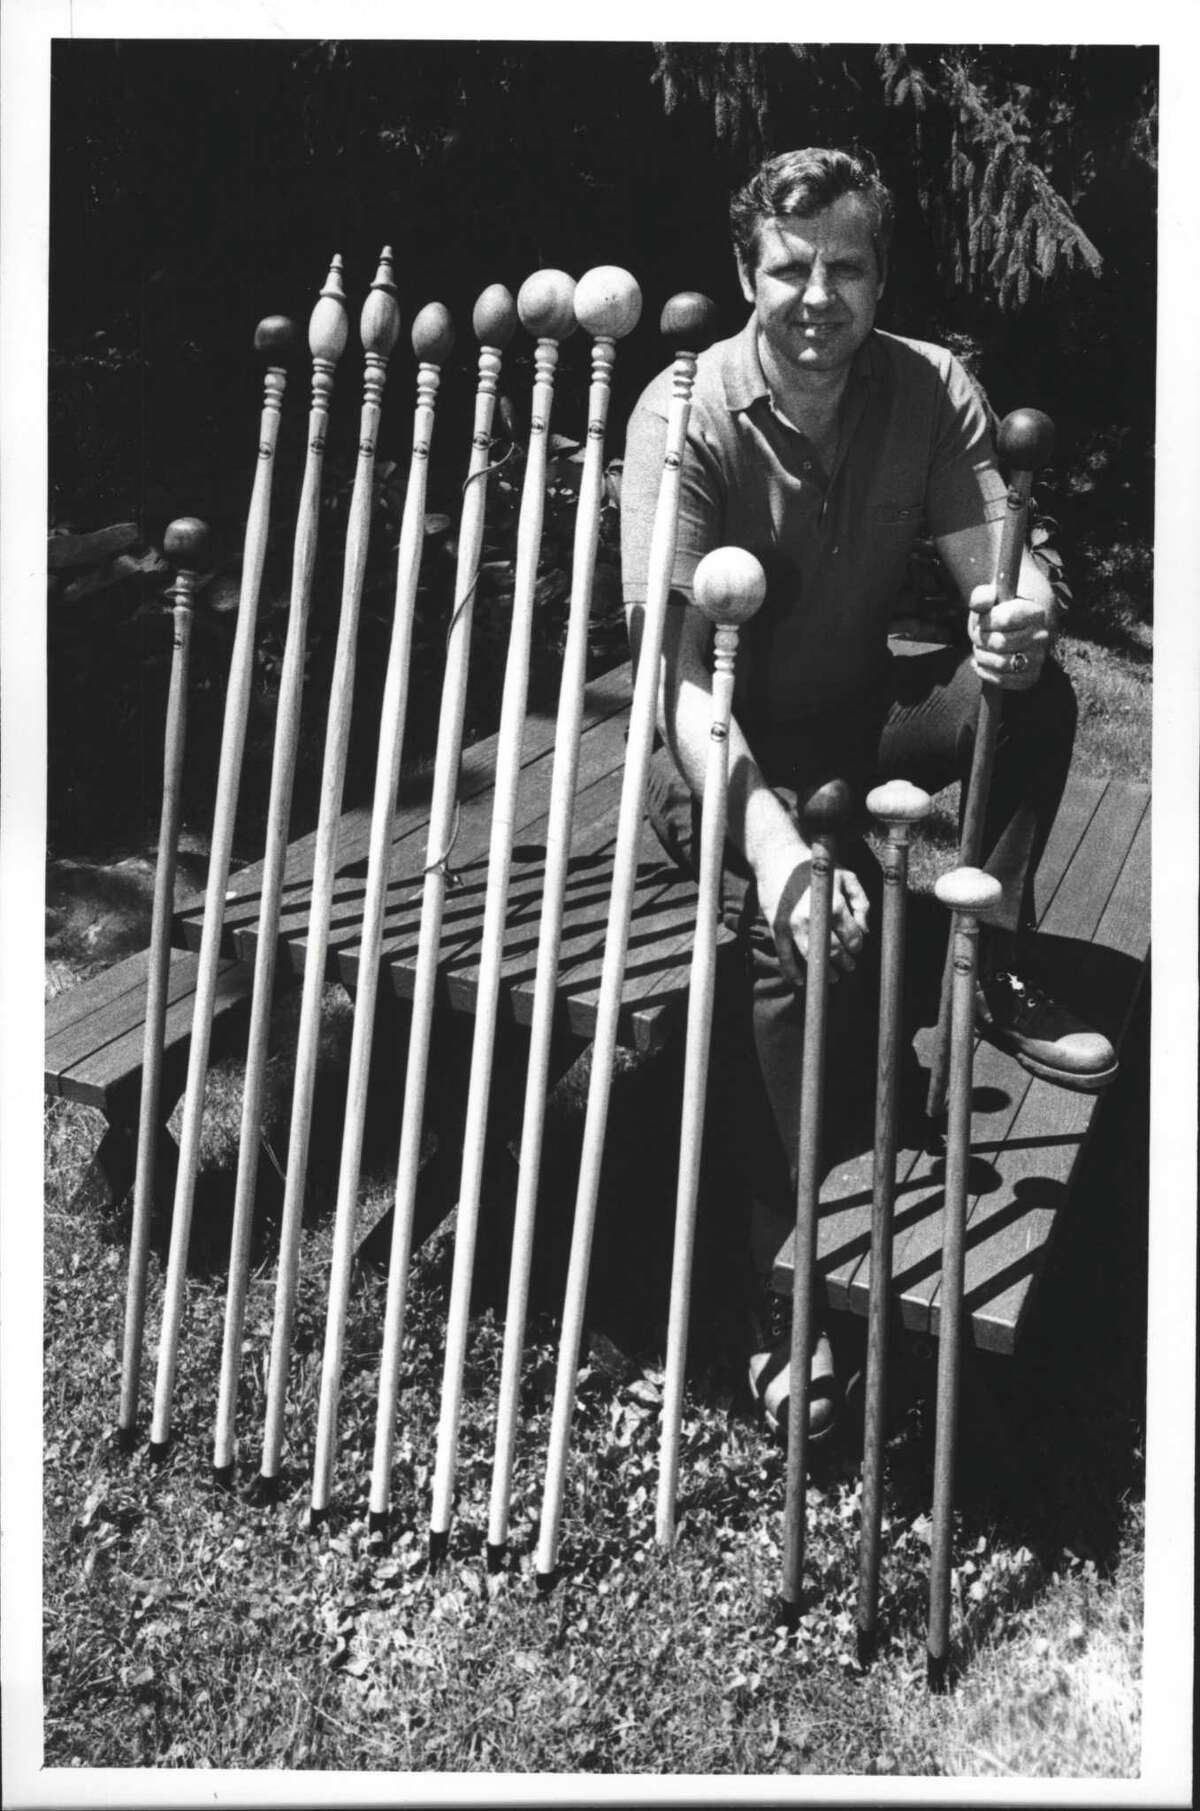 Grafton, New York - Al Fromberger, owner of Pestenkill Hiking Staff Manufacturing Co., poses in his Grafton backyard with an assortment of his sticks. June 26, 1990 (Paul D. Kniskern, Sr./Times Union Archive)